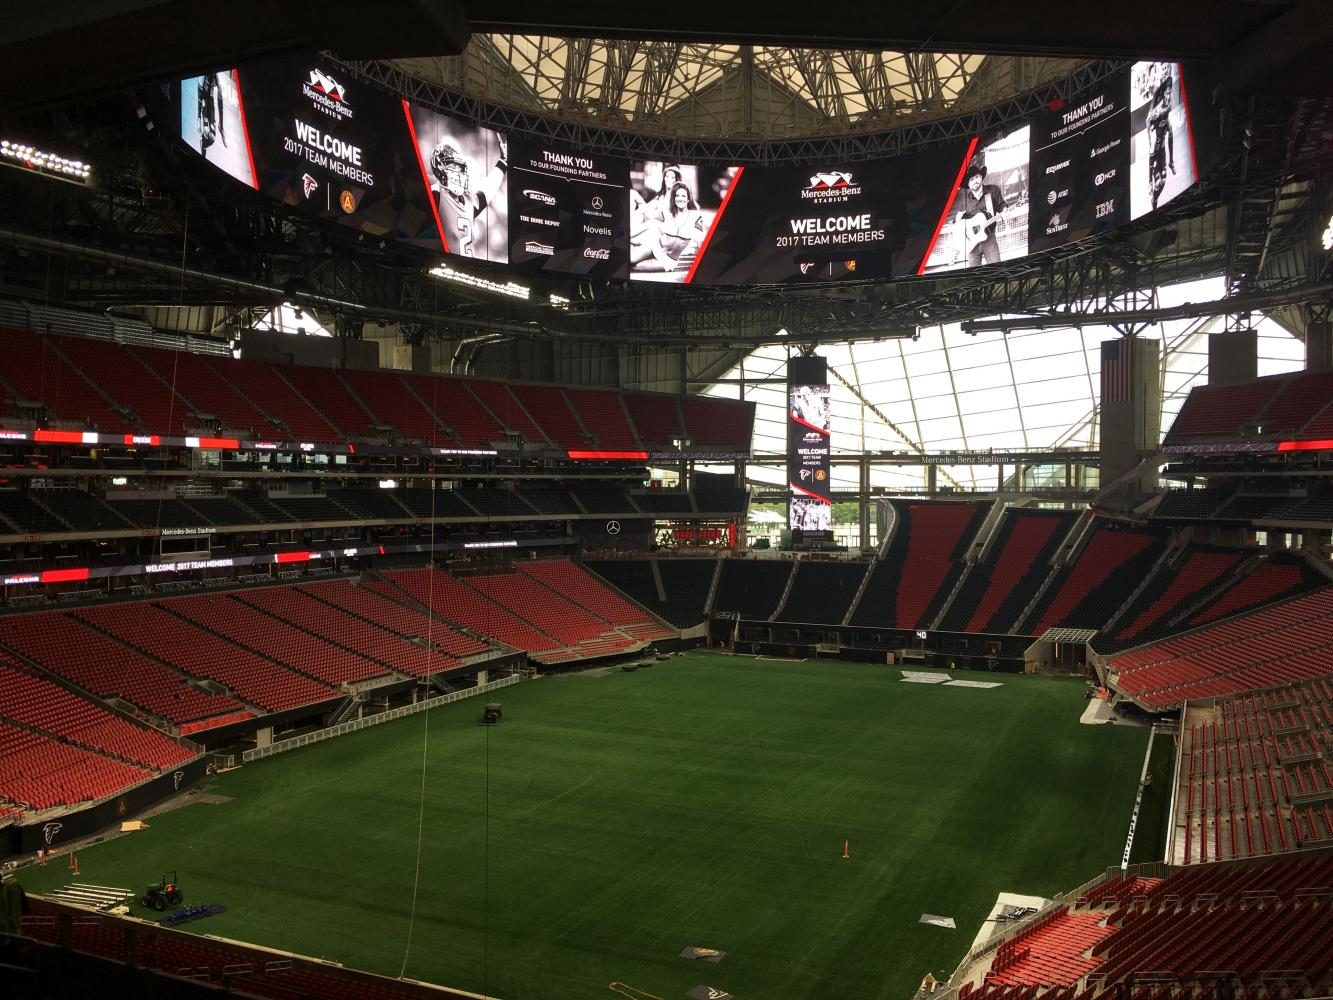 Mercedes Benz Stadium brings state-of-the-art technology